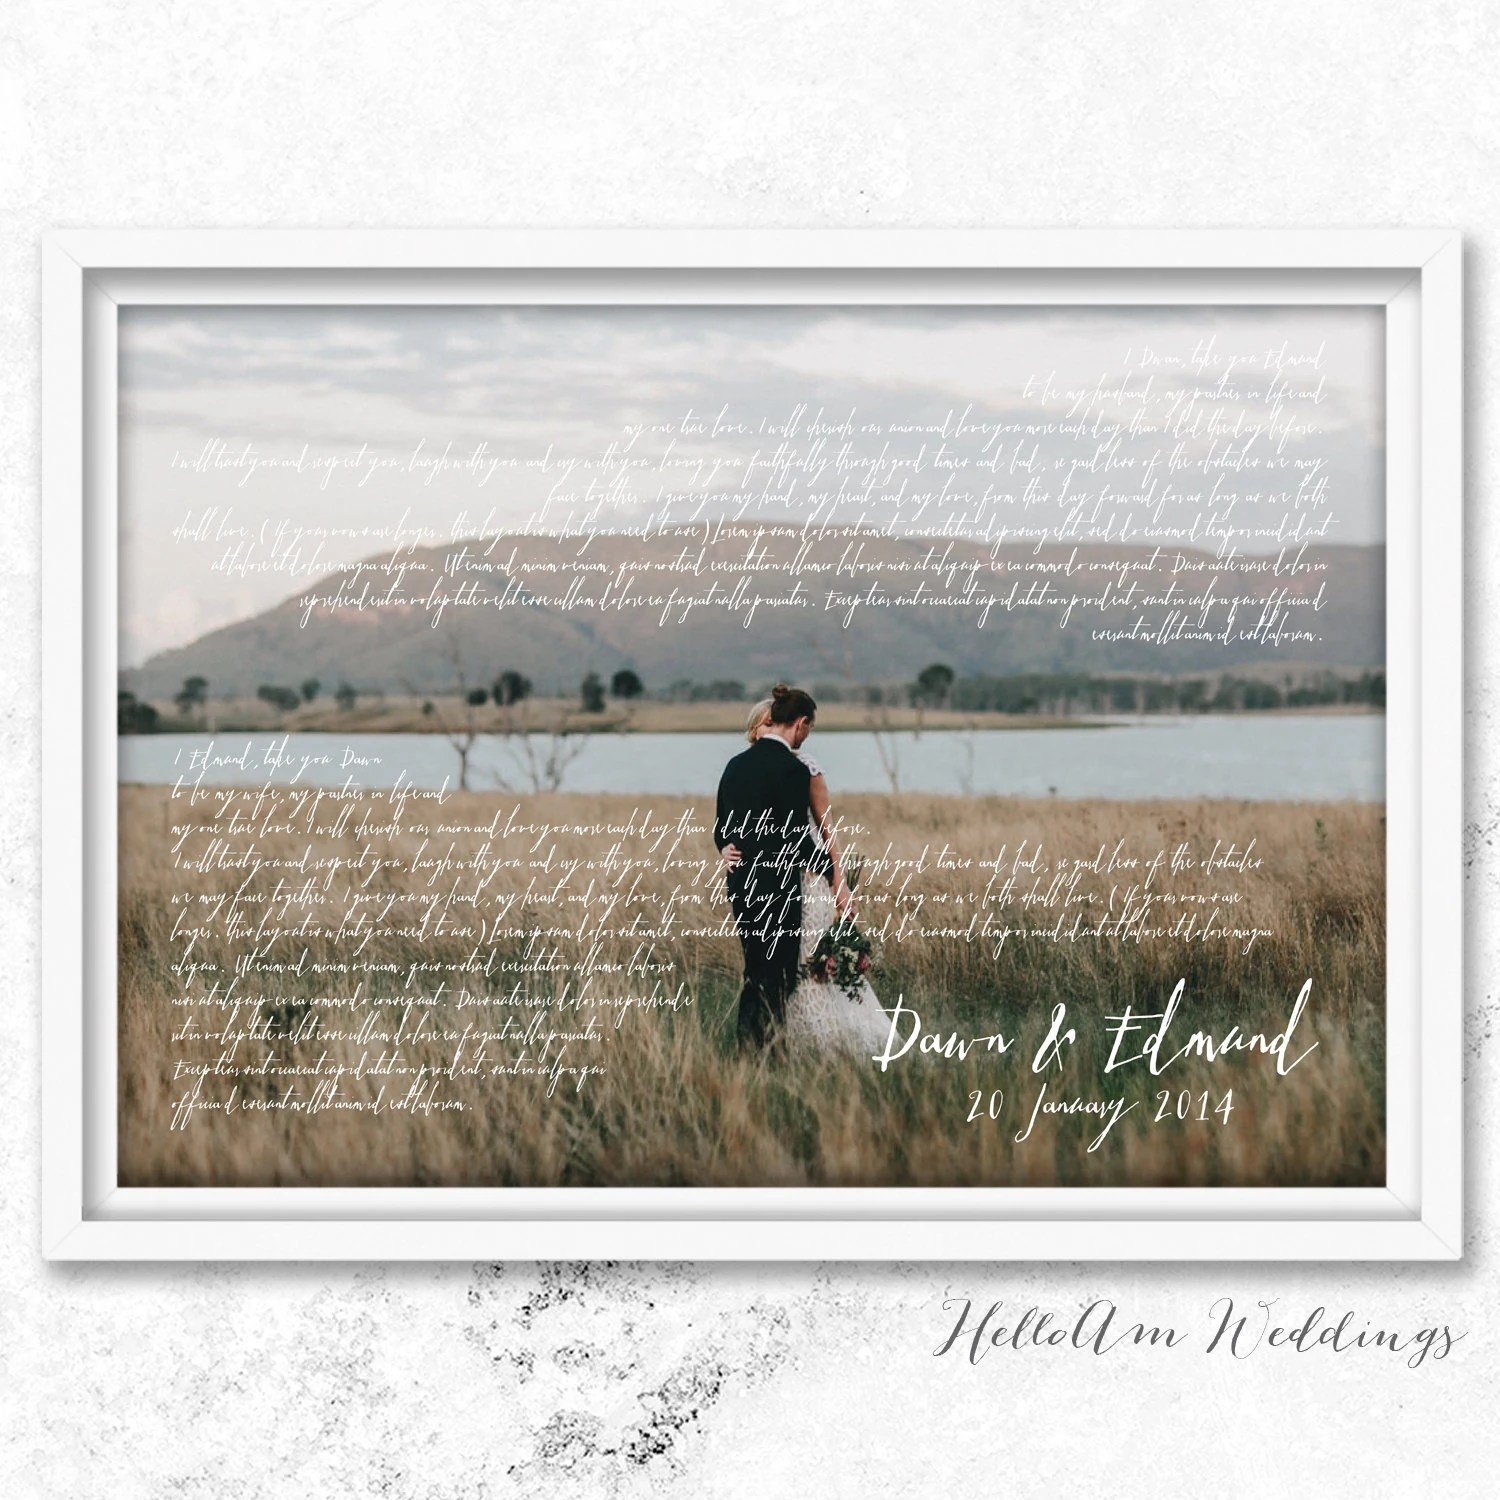 one year anniversary first wedding anniversary gift wedding vows framed 1st anniversary gift Mr and mrs wedding gift first wedding anniversary gift for him wedding gift idea vow renewal